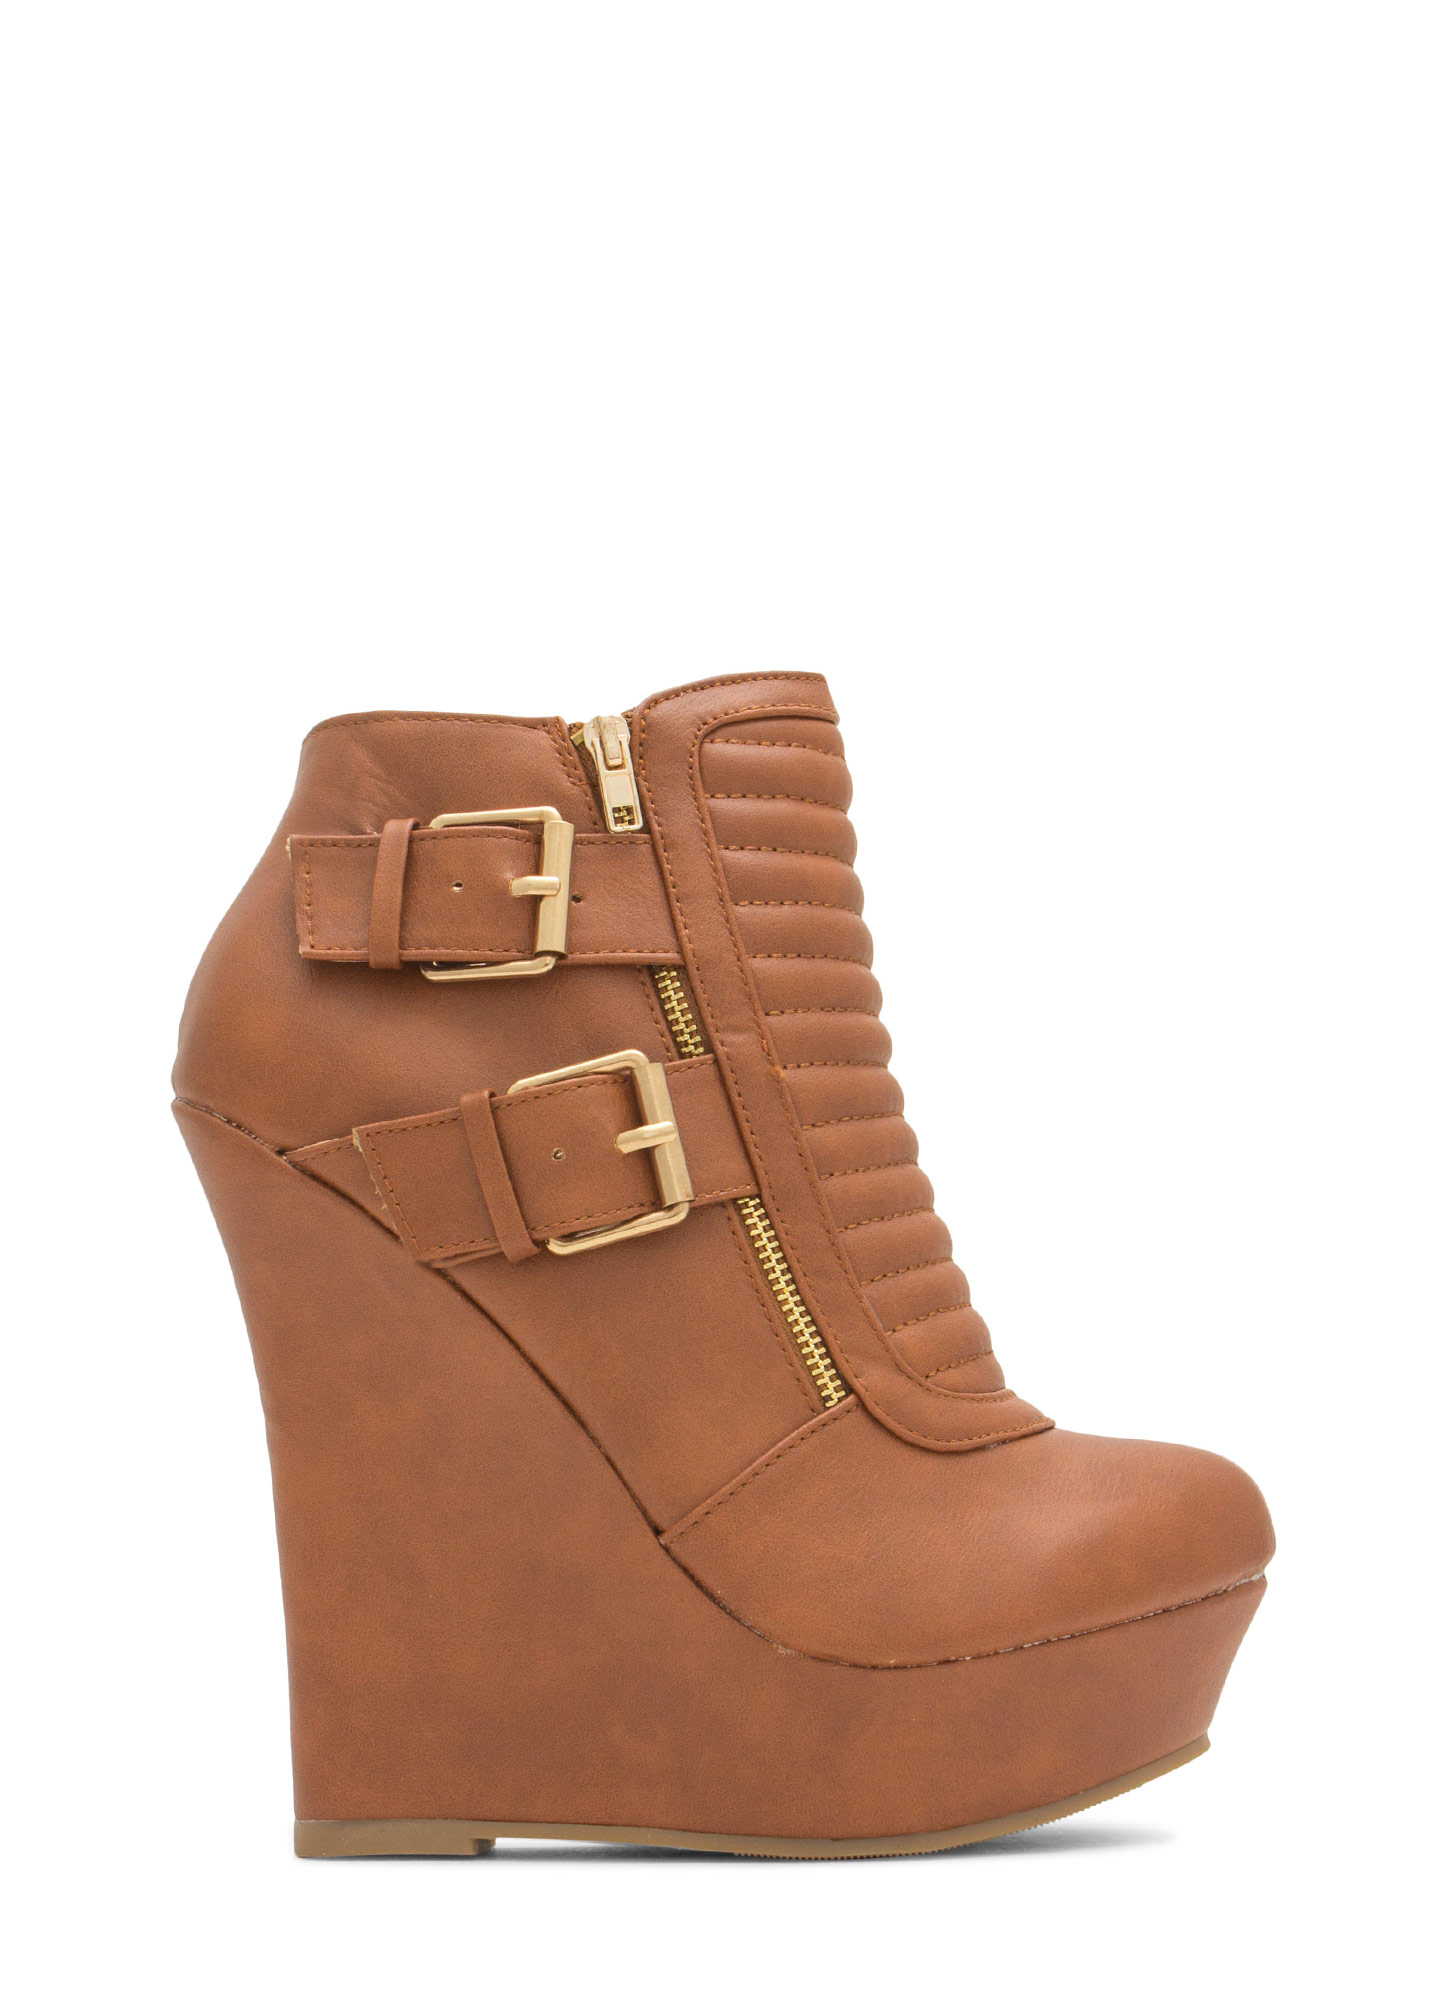 Stitched Moto Buckled Wedge Booties COGNAC